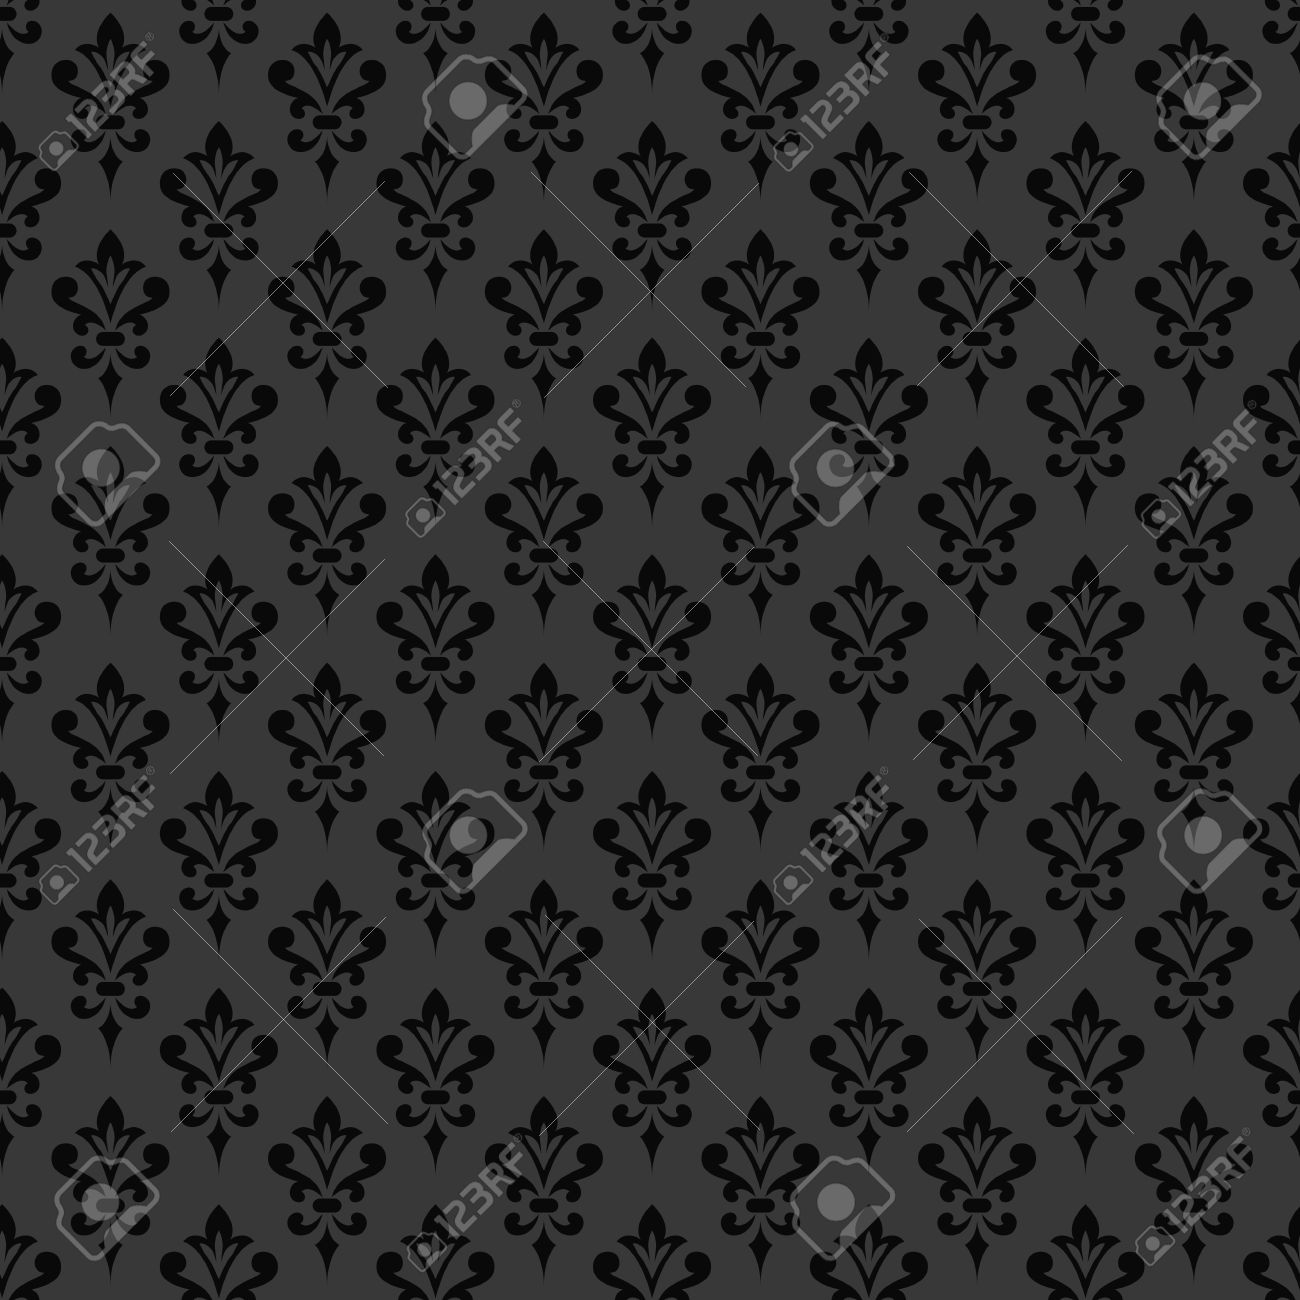 Black Damask Wallpaper Background In Victorian Style Elegant Vintage Ornament Monochrome Colors